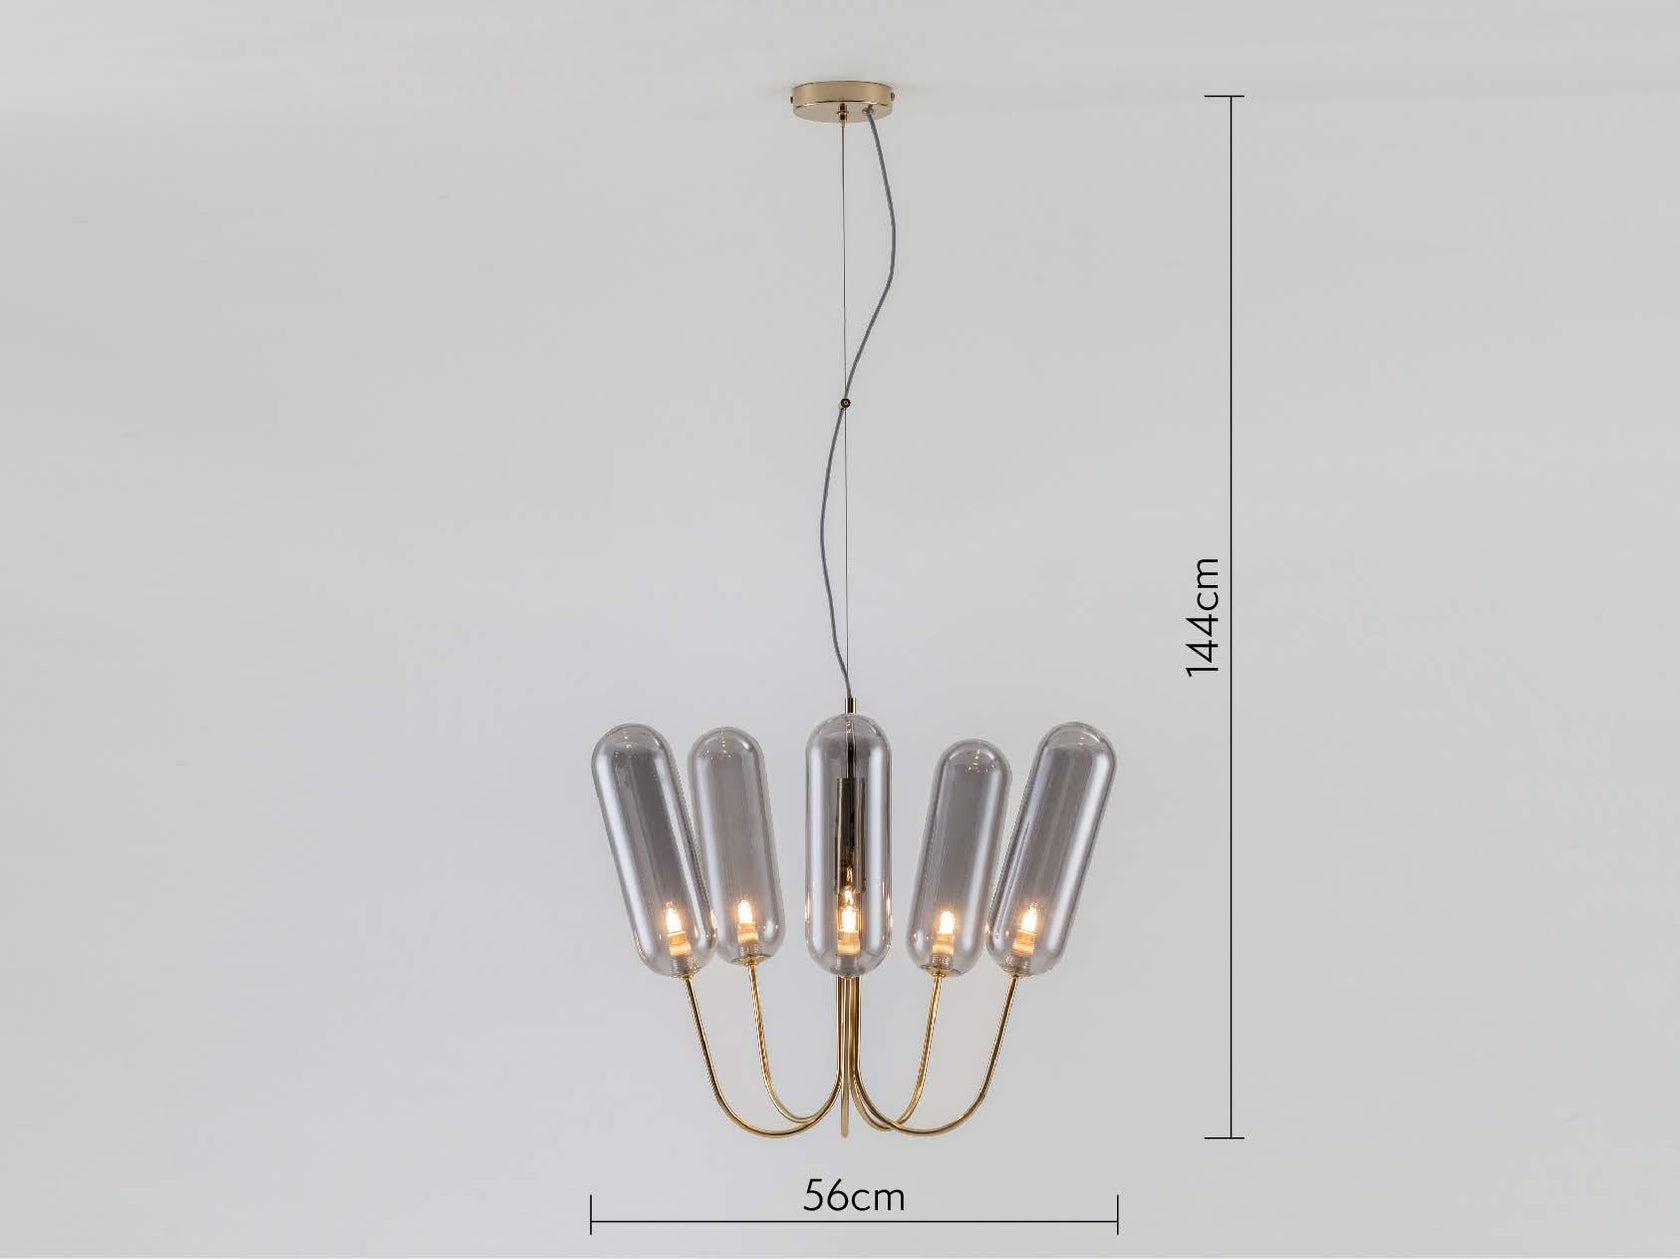 5 light pill chandelier brass | dimensions | houseof.com